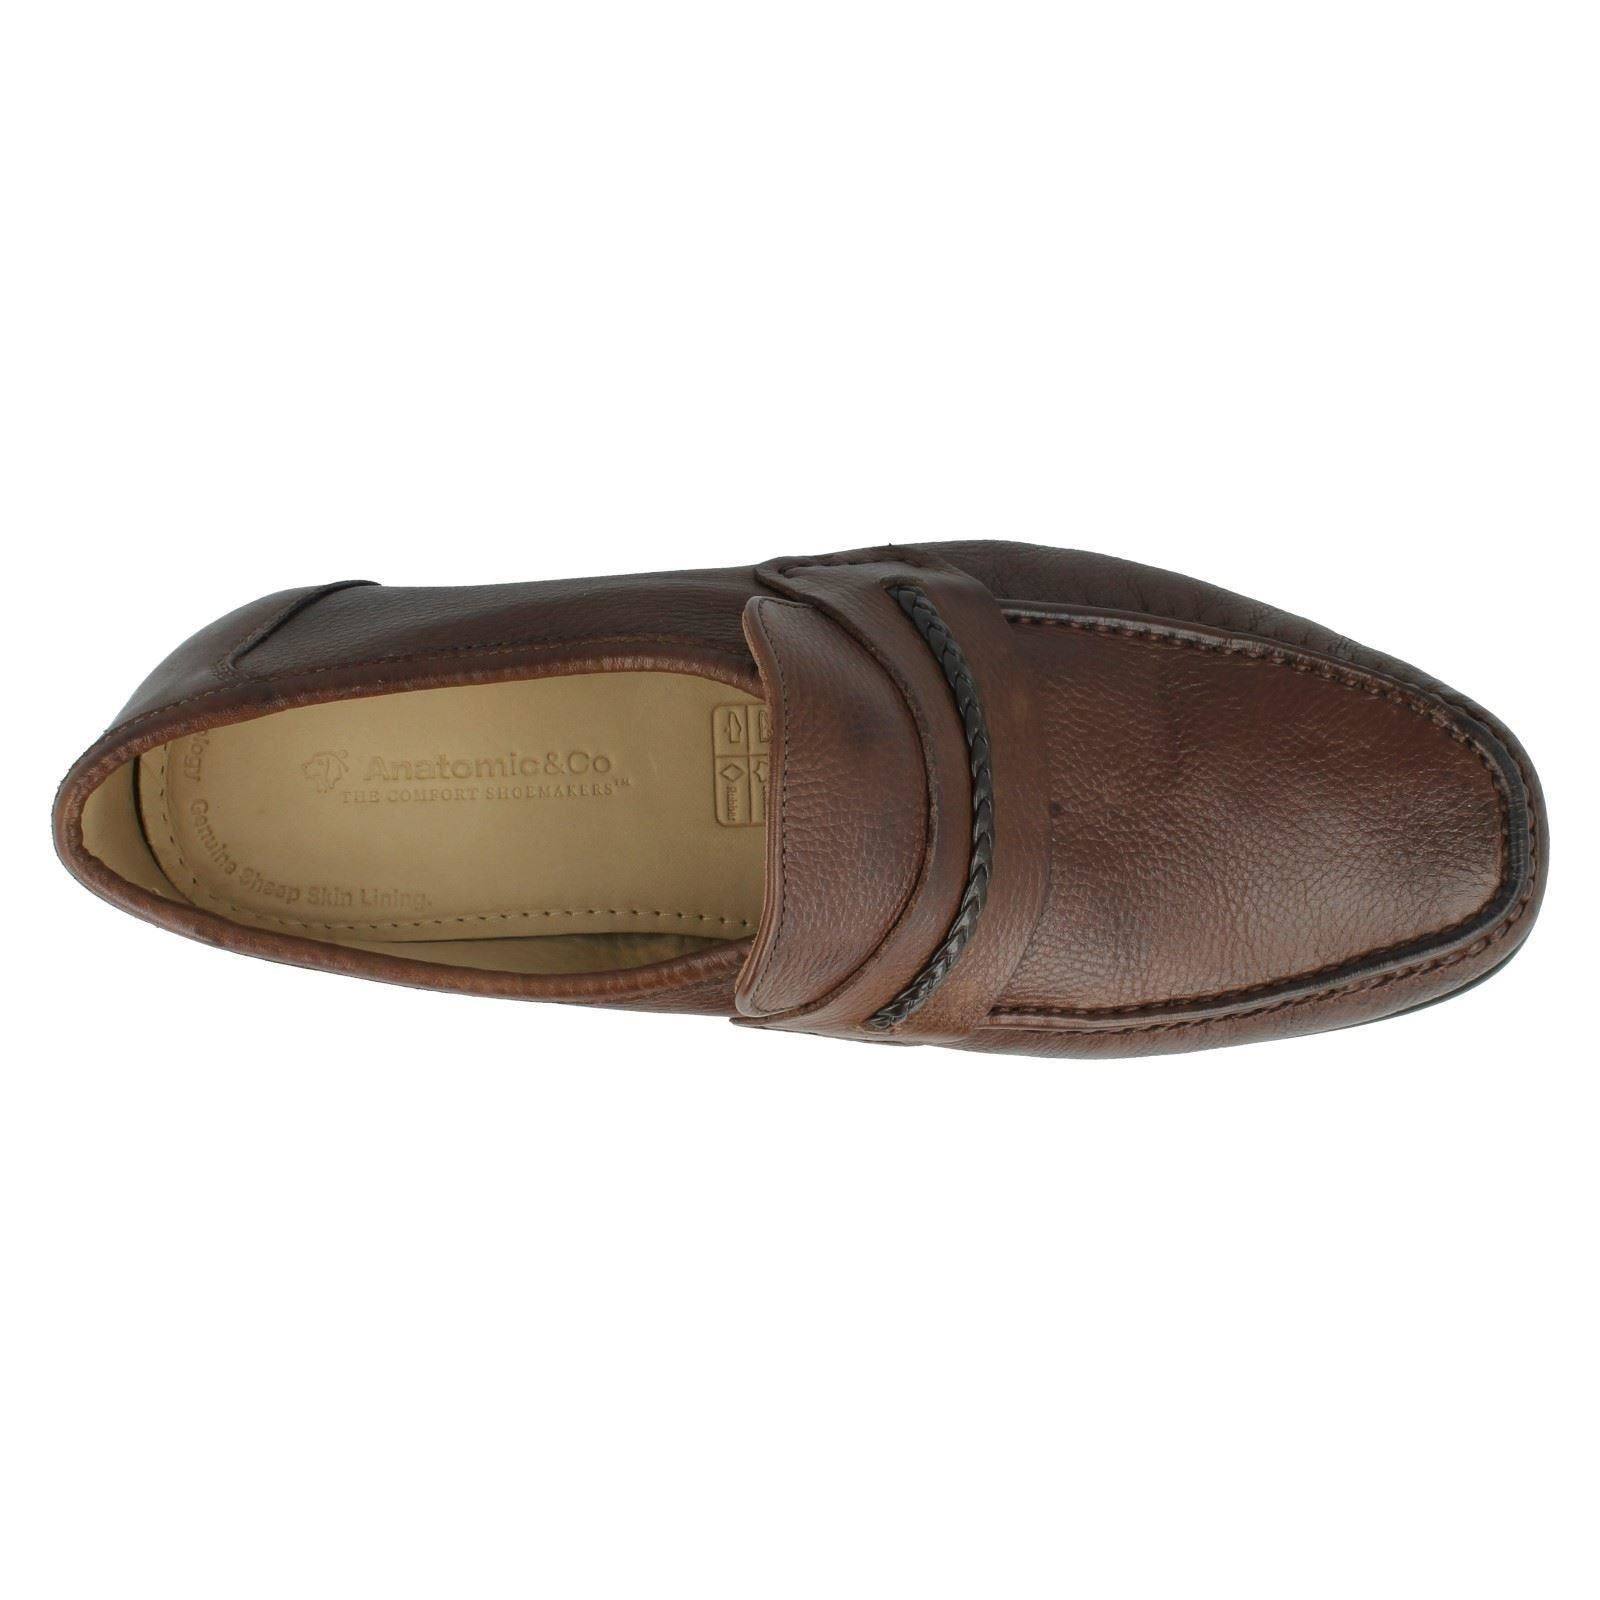 Co Herren Anatomic & Co  Leder Moccasin Loafers Gaspar 630e4e